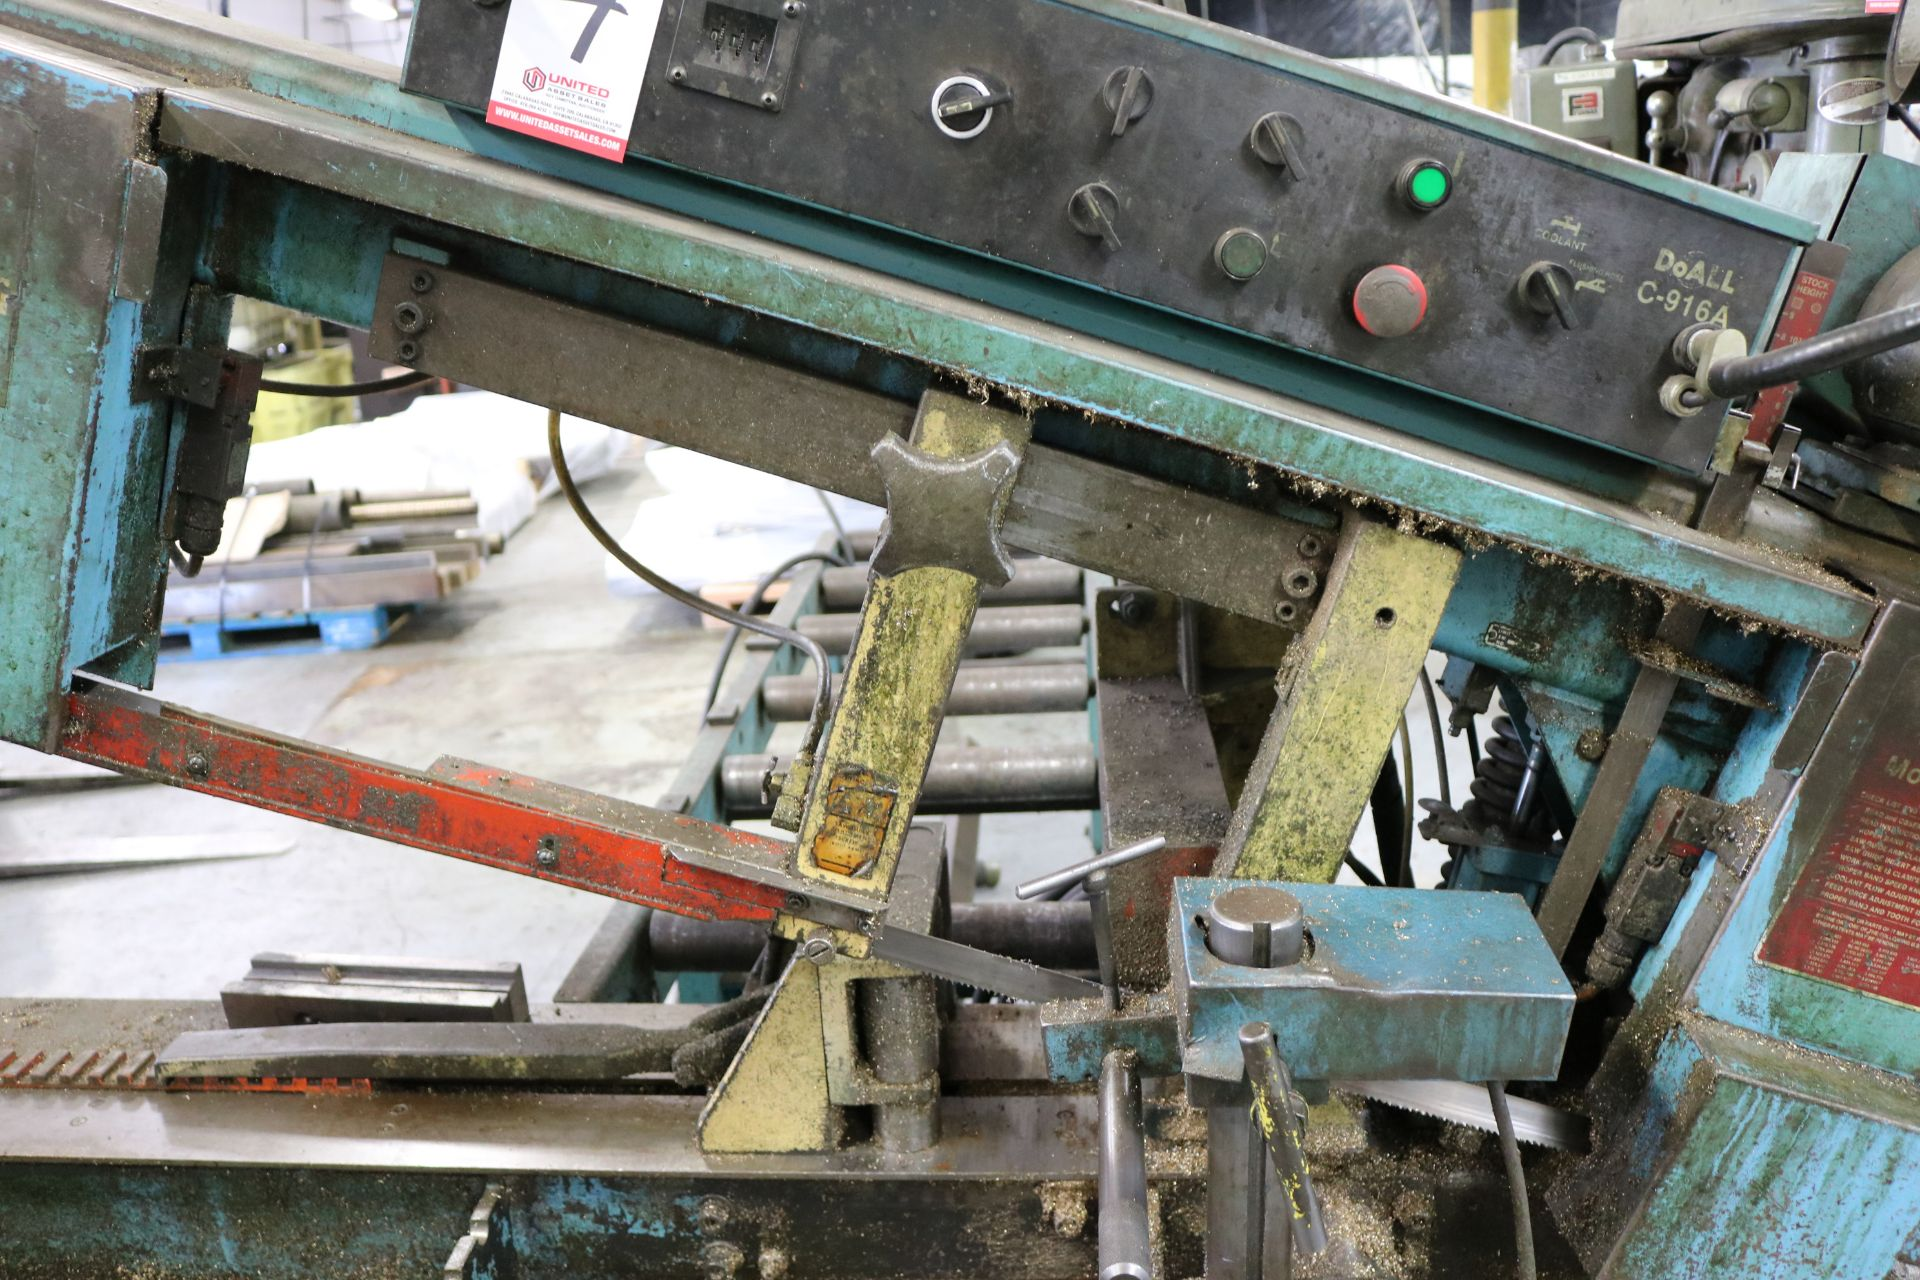 """Lot 4 - DOALL HORIZONTAL BAND SAW, MODEL C916A, 9"""" X 16"""" CAPACITY, X/N 502-93221, W/ OUT FEED CONVEYOR"""